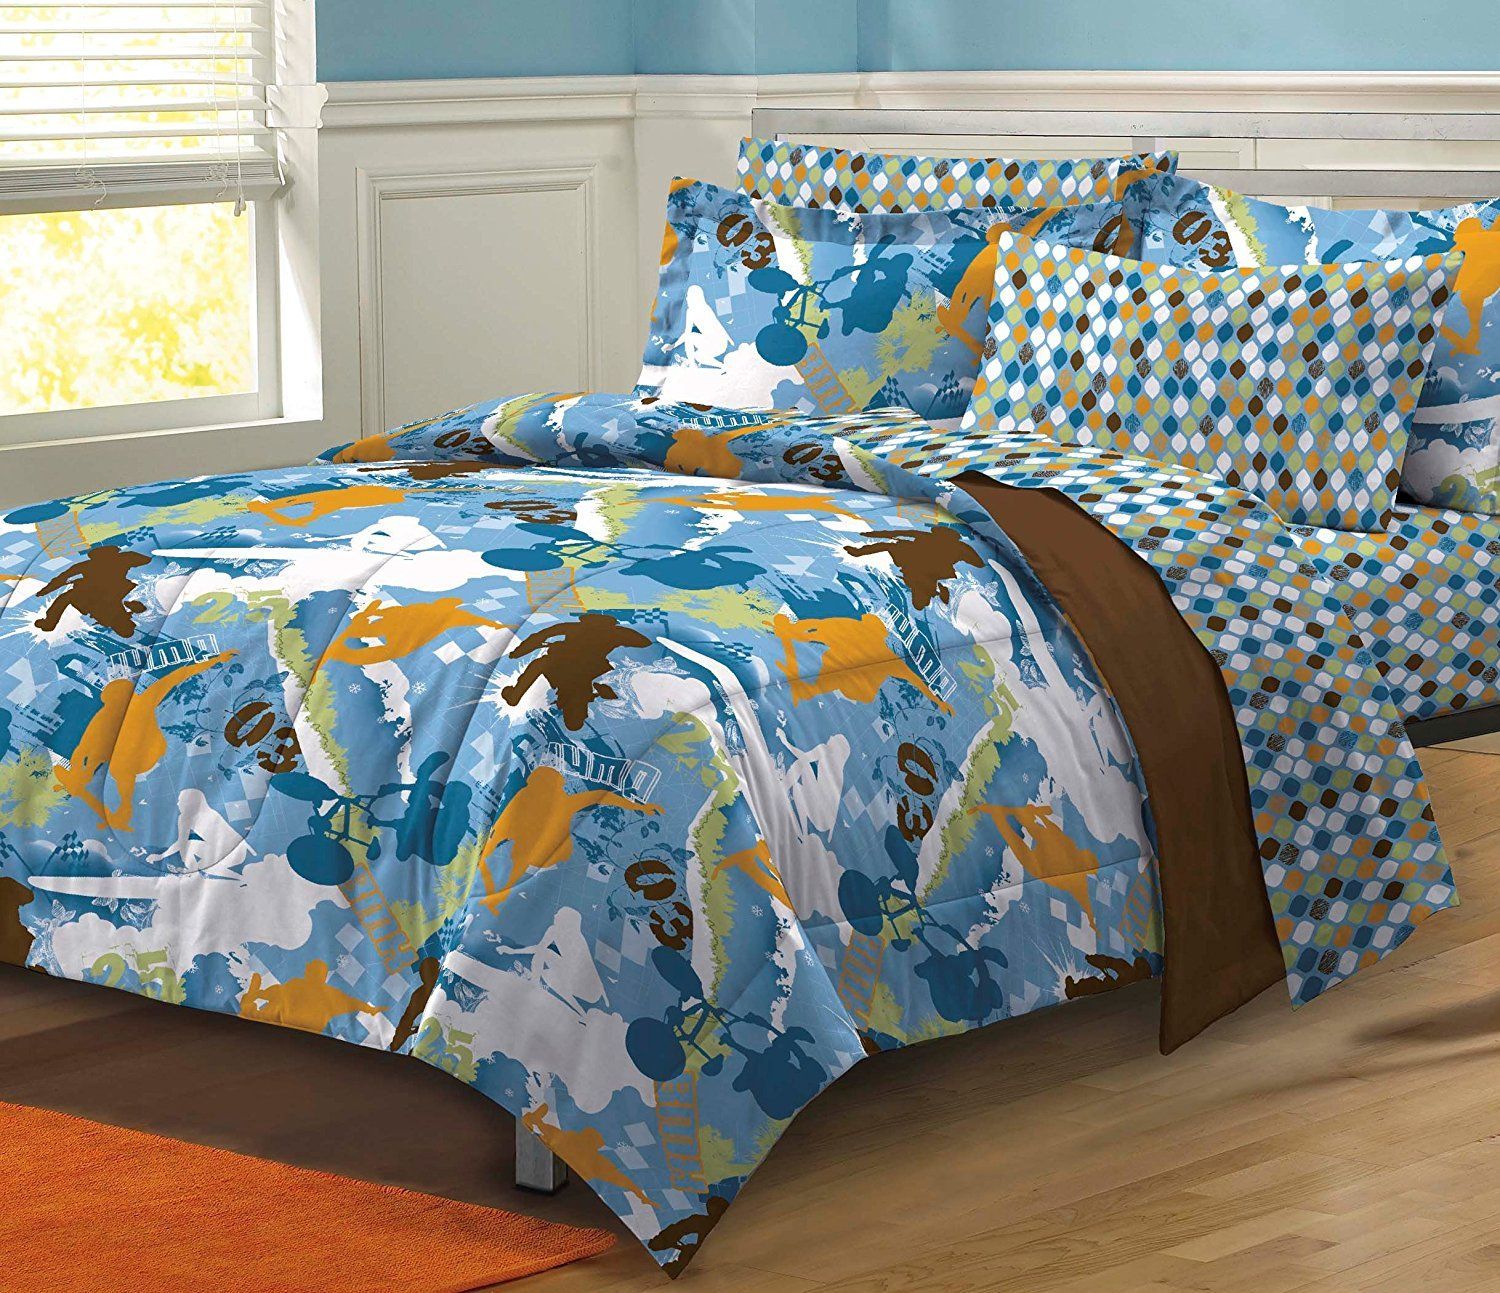 sale bed kids twin sets and comforter sports funny white black cool double dinosaur horse set colorful bedding queen boys childrens girl best little boy beds spread teen comforters girls sheets duvet